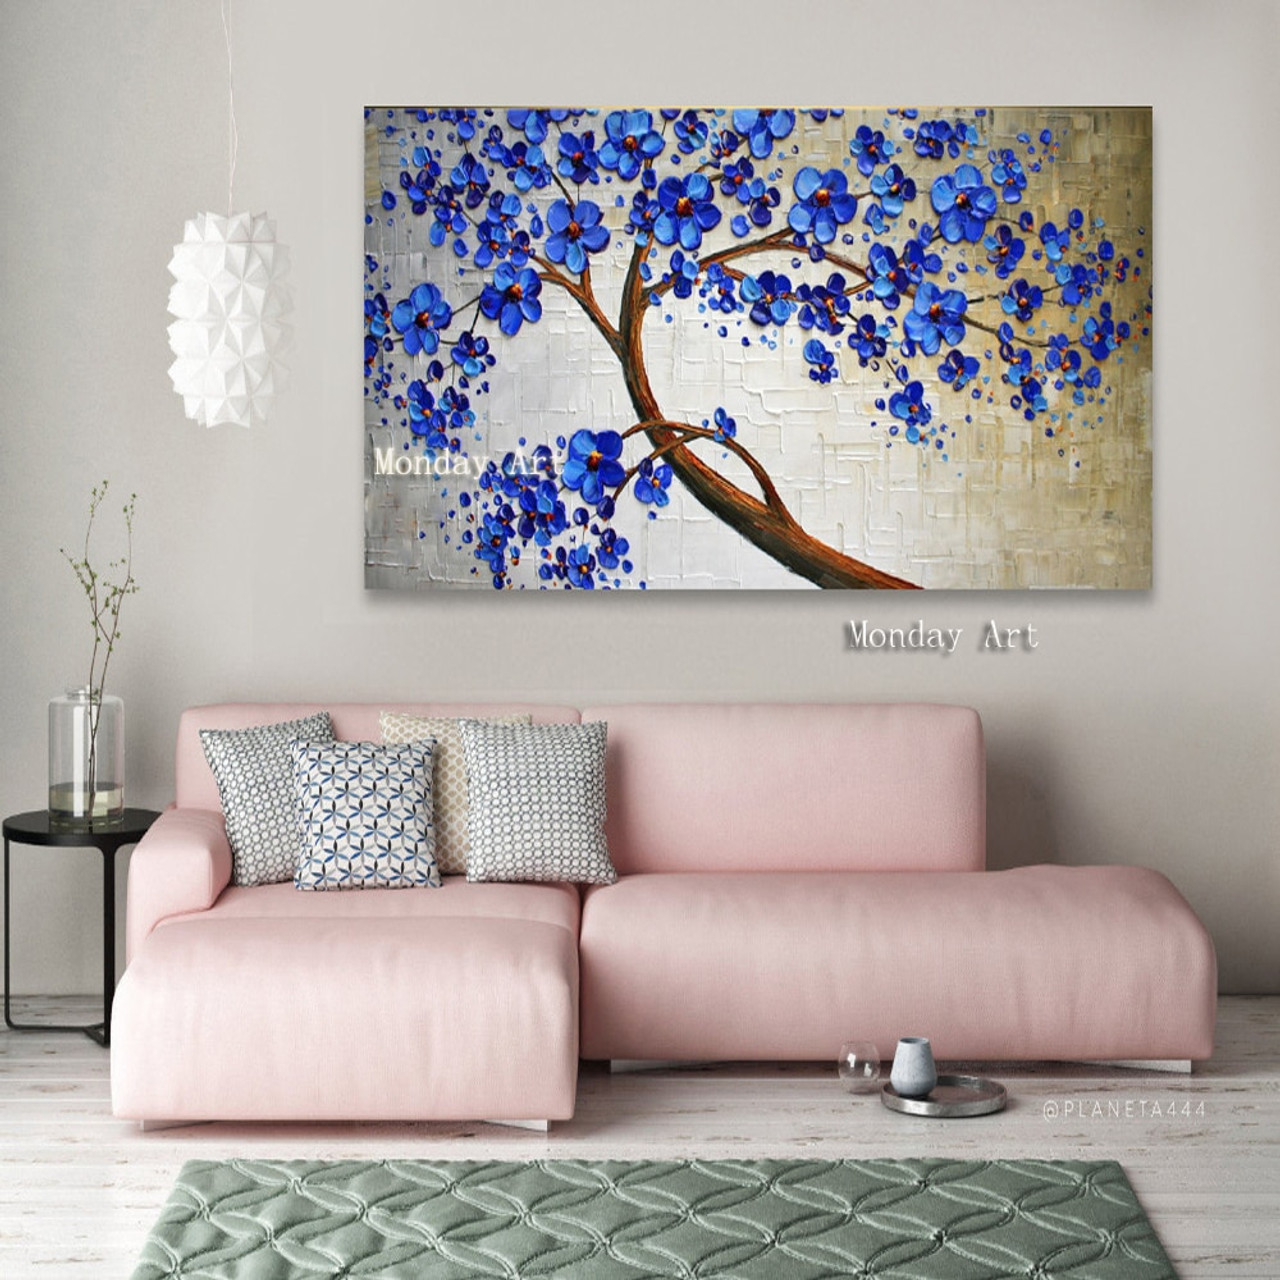 Modern Handpainted Large Gold Money Tree Flower Oil Painting On Canvas Abstract Home Wall Decor Art Picture For Living Room Gift Onshopdeals Com